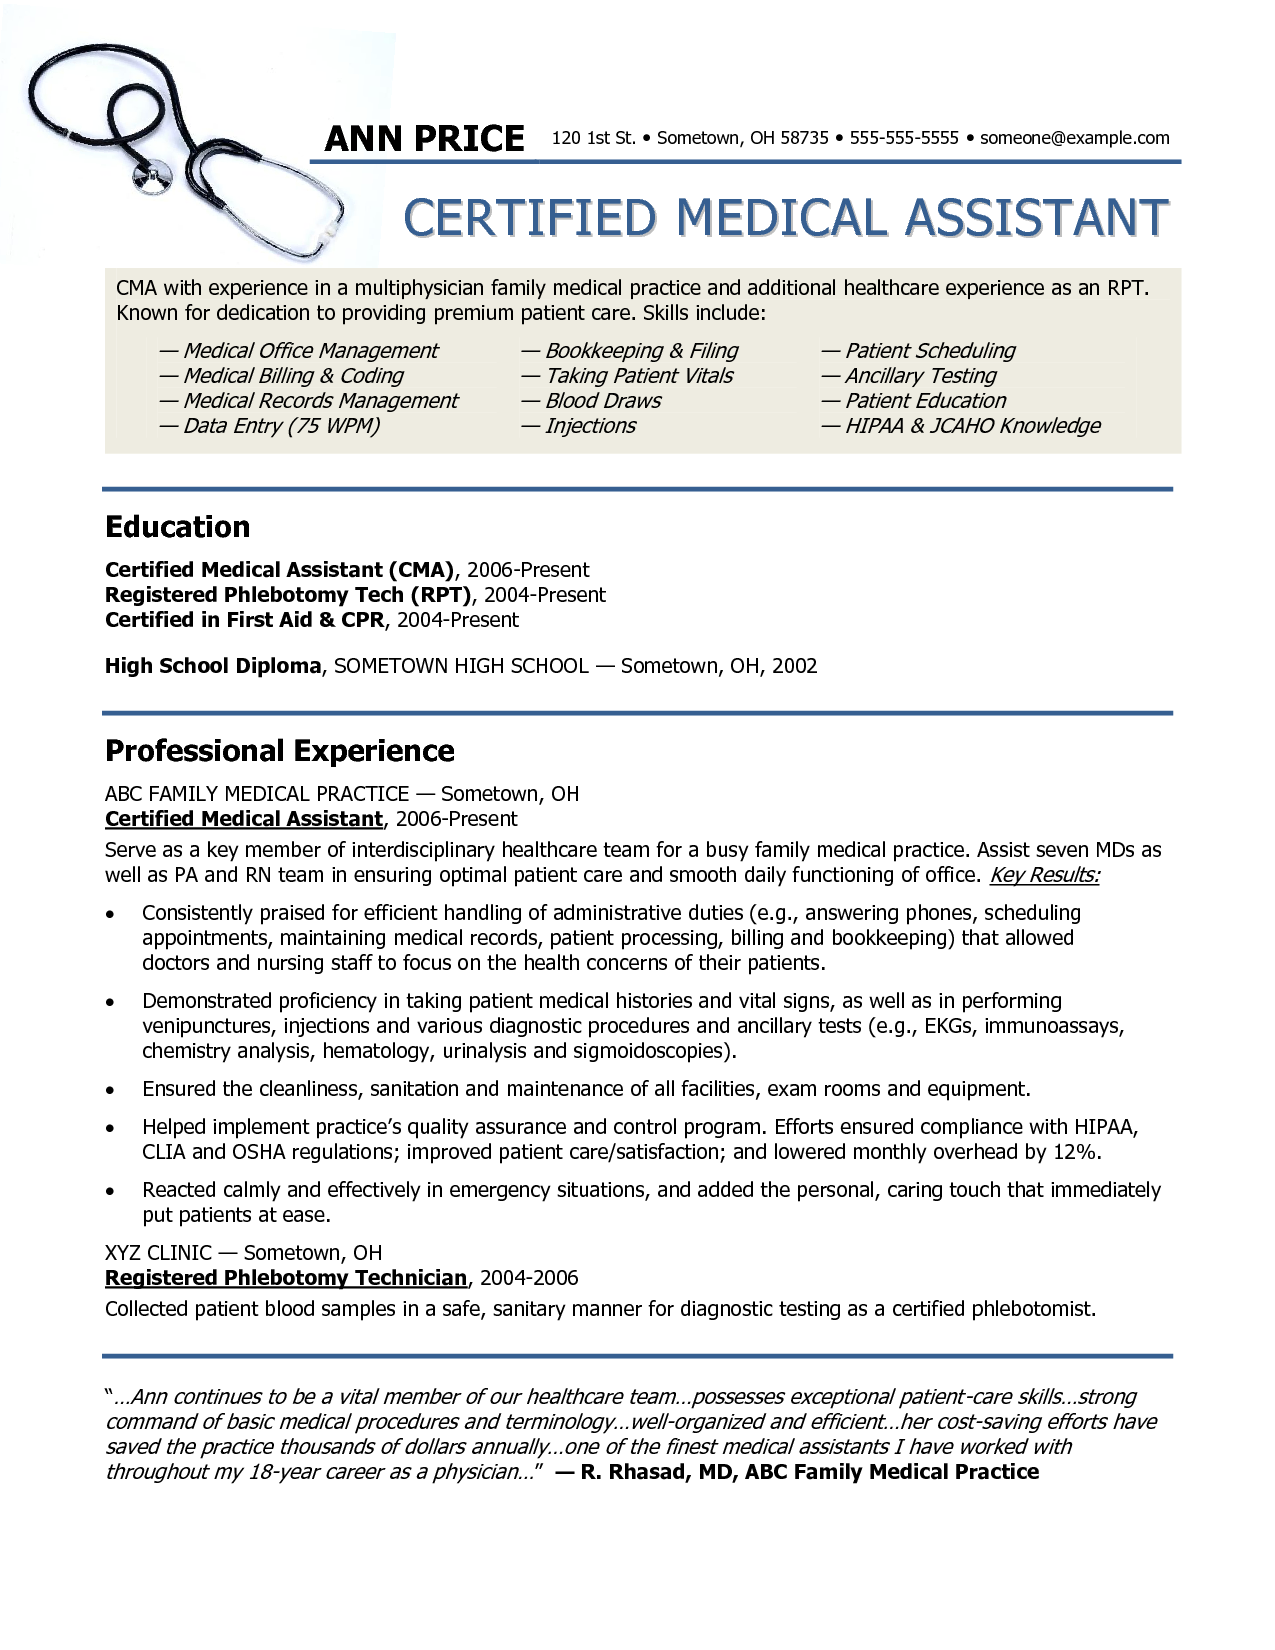 Certified Medical Assistant Resume Resume Examples Example Of Medical Assistant Resume Regular